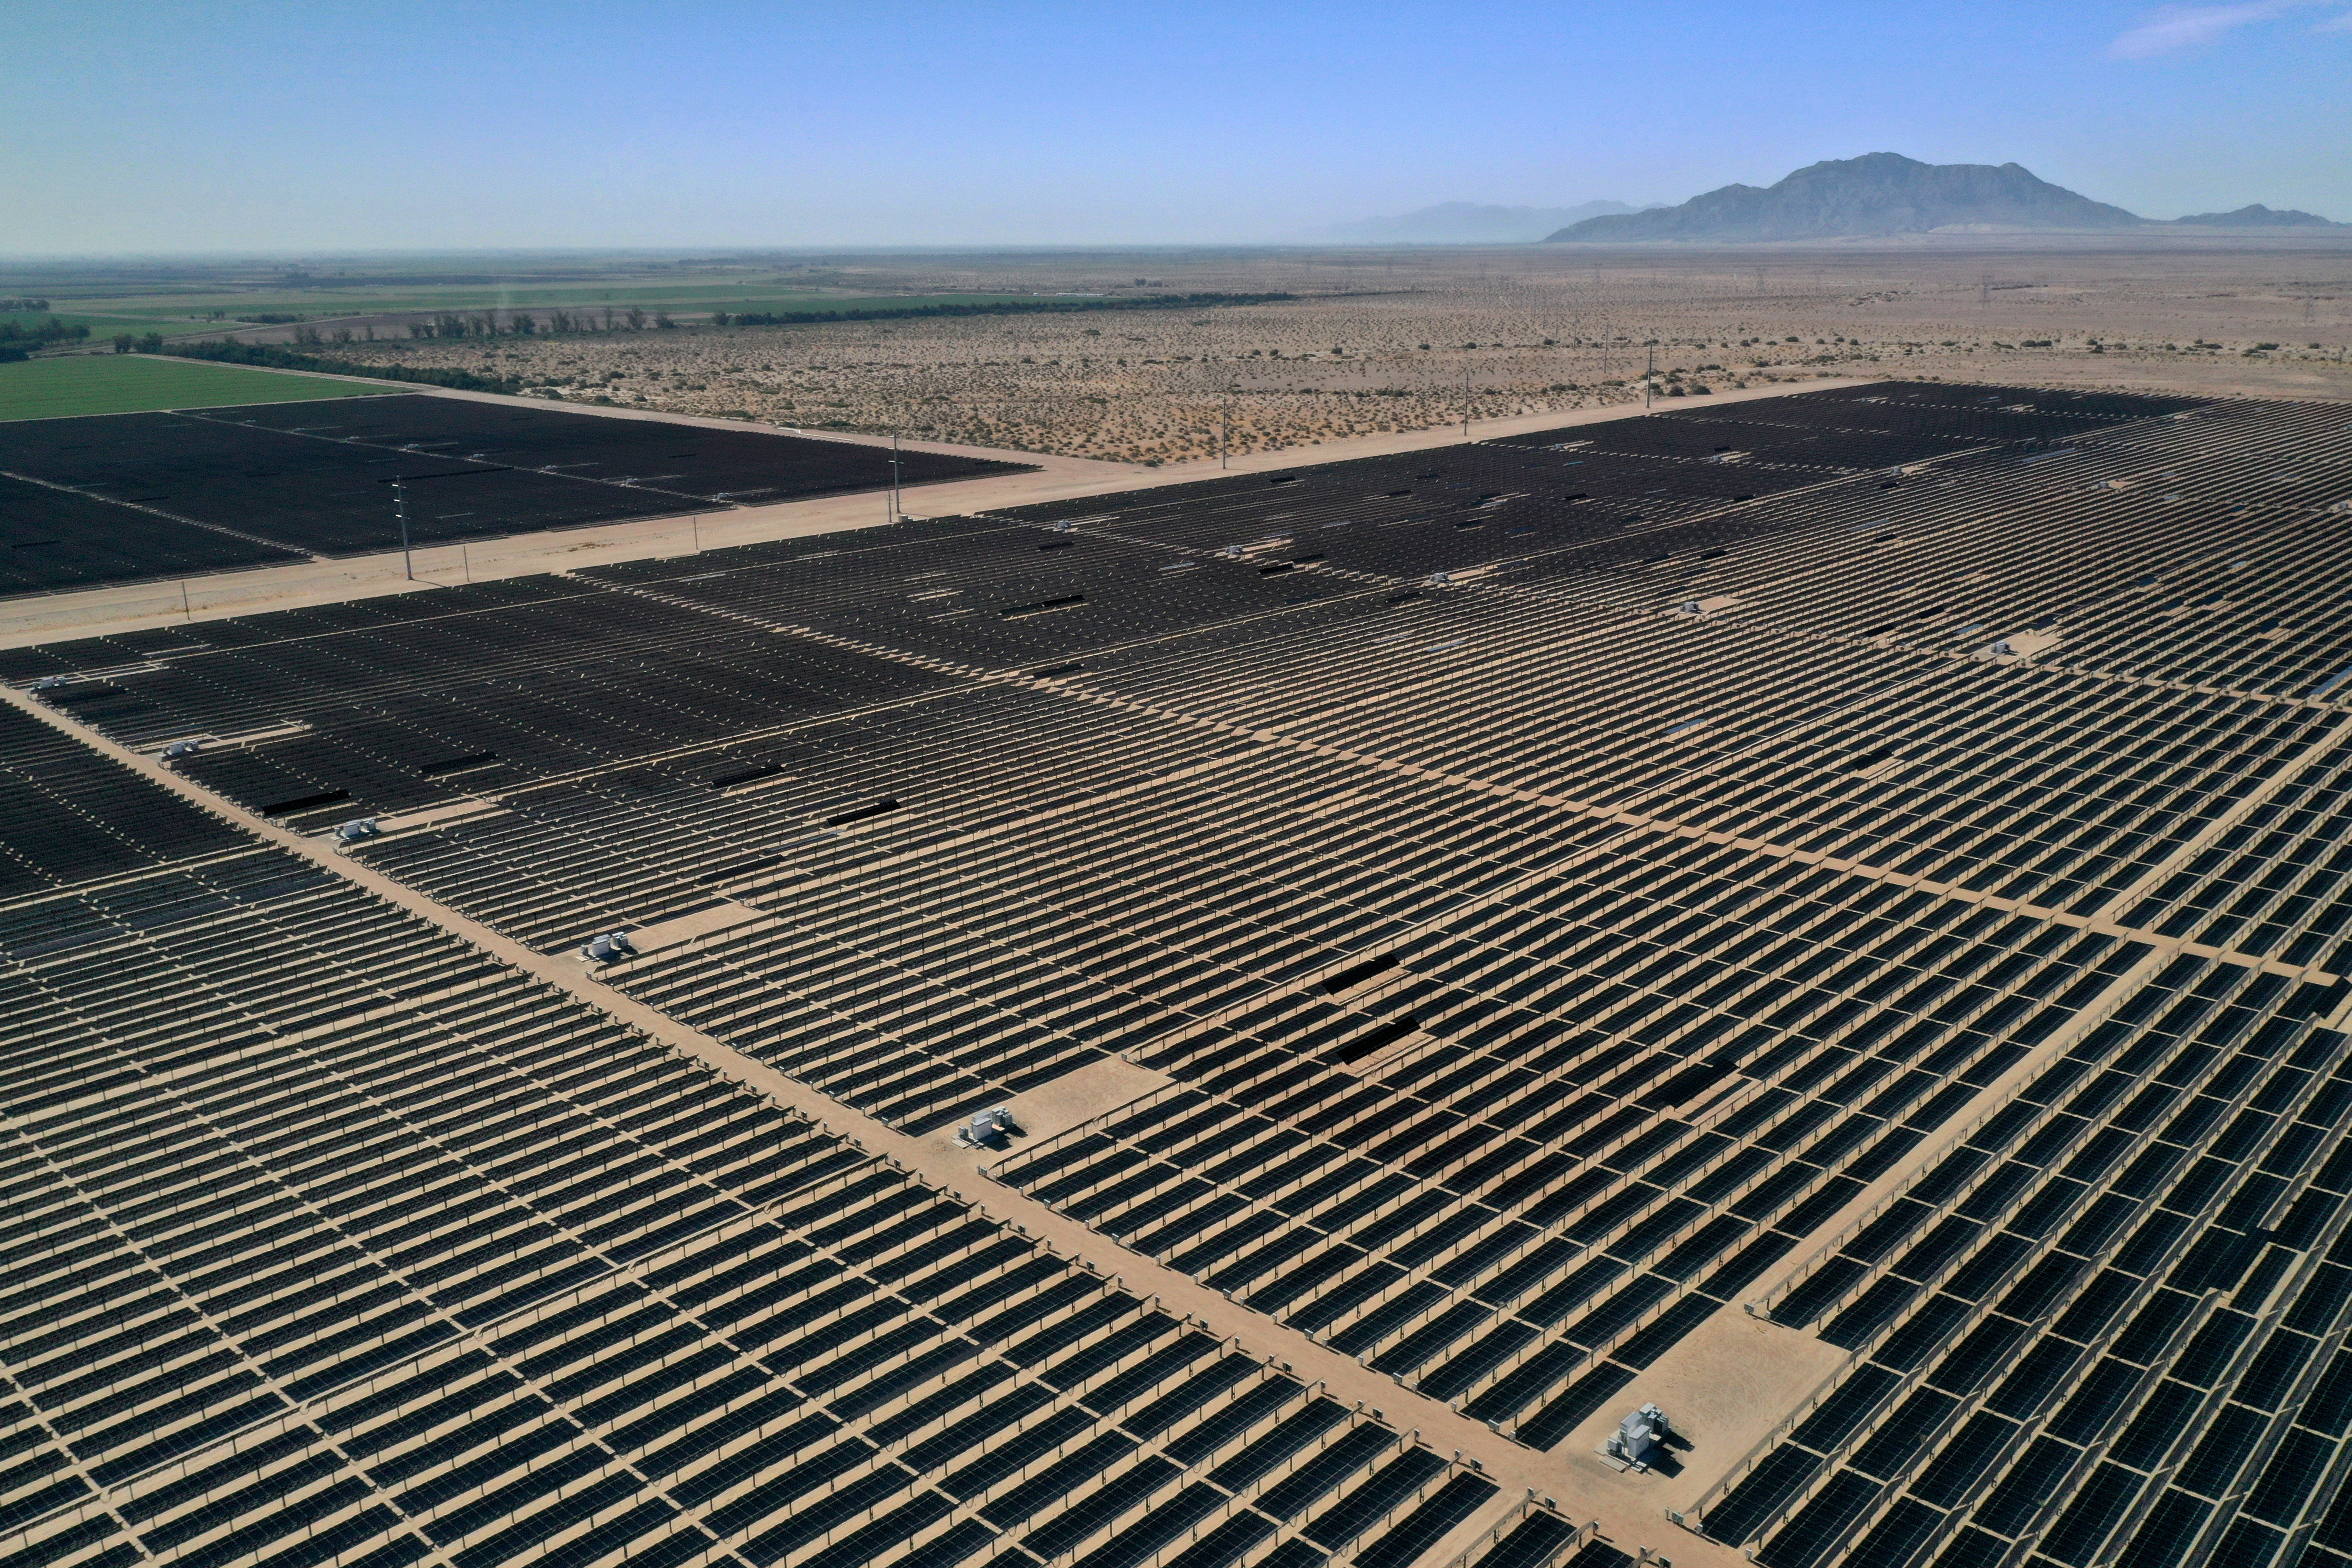 Arrays of photovoltaic solar panels are seen at the Tenaska Imperial Solar Energy Center South as the spread of the coronavirus disease (COVID-19) continues in this aerial photo taken over El Centro, California, U.S., May 29, 2020. Picture taken with a drone. REUTERS/Bing Guan